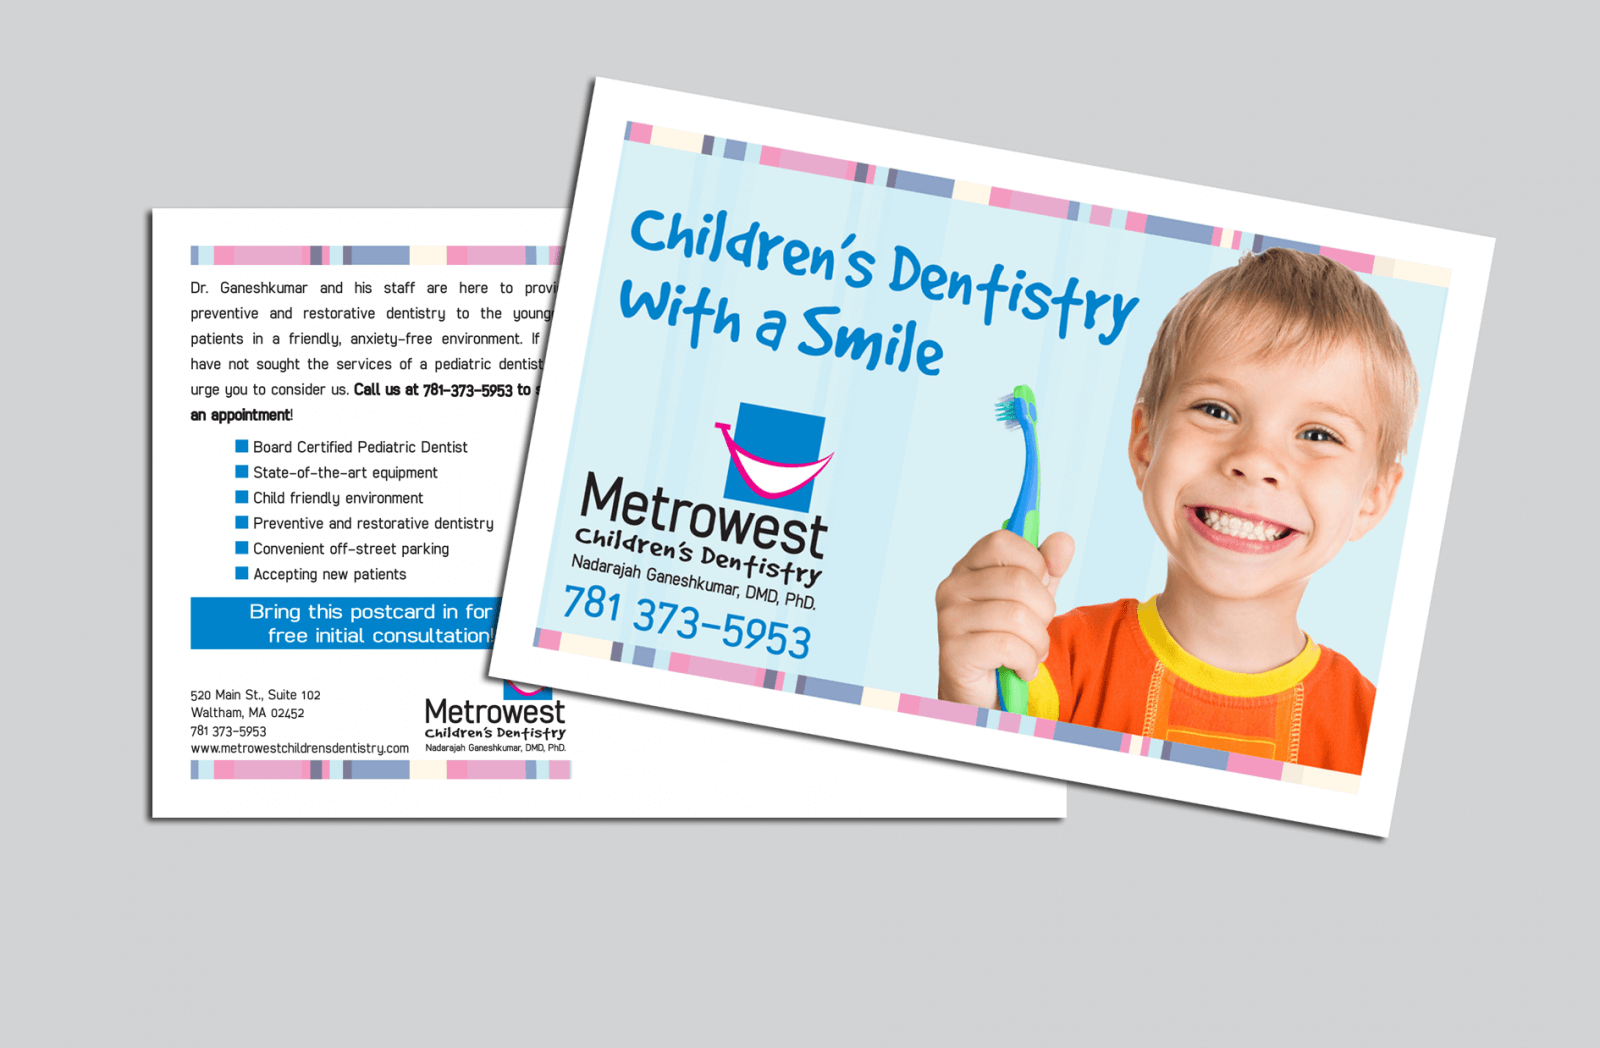 Metrowest Children's Dentristry postcard